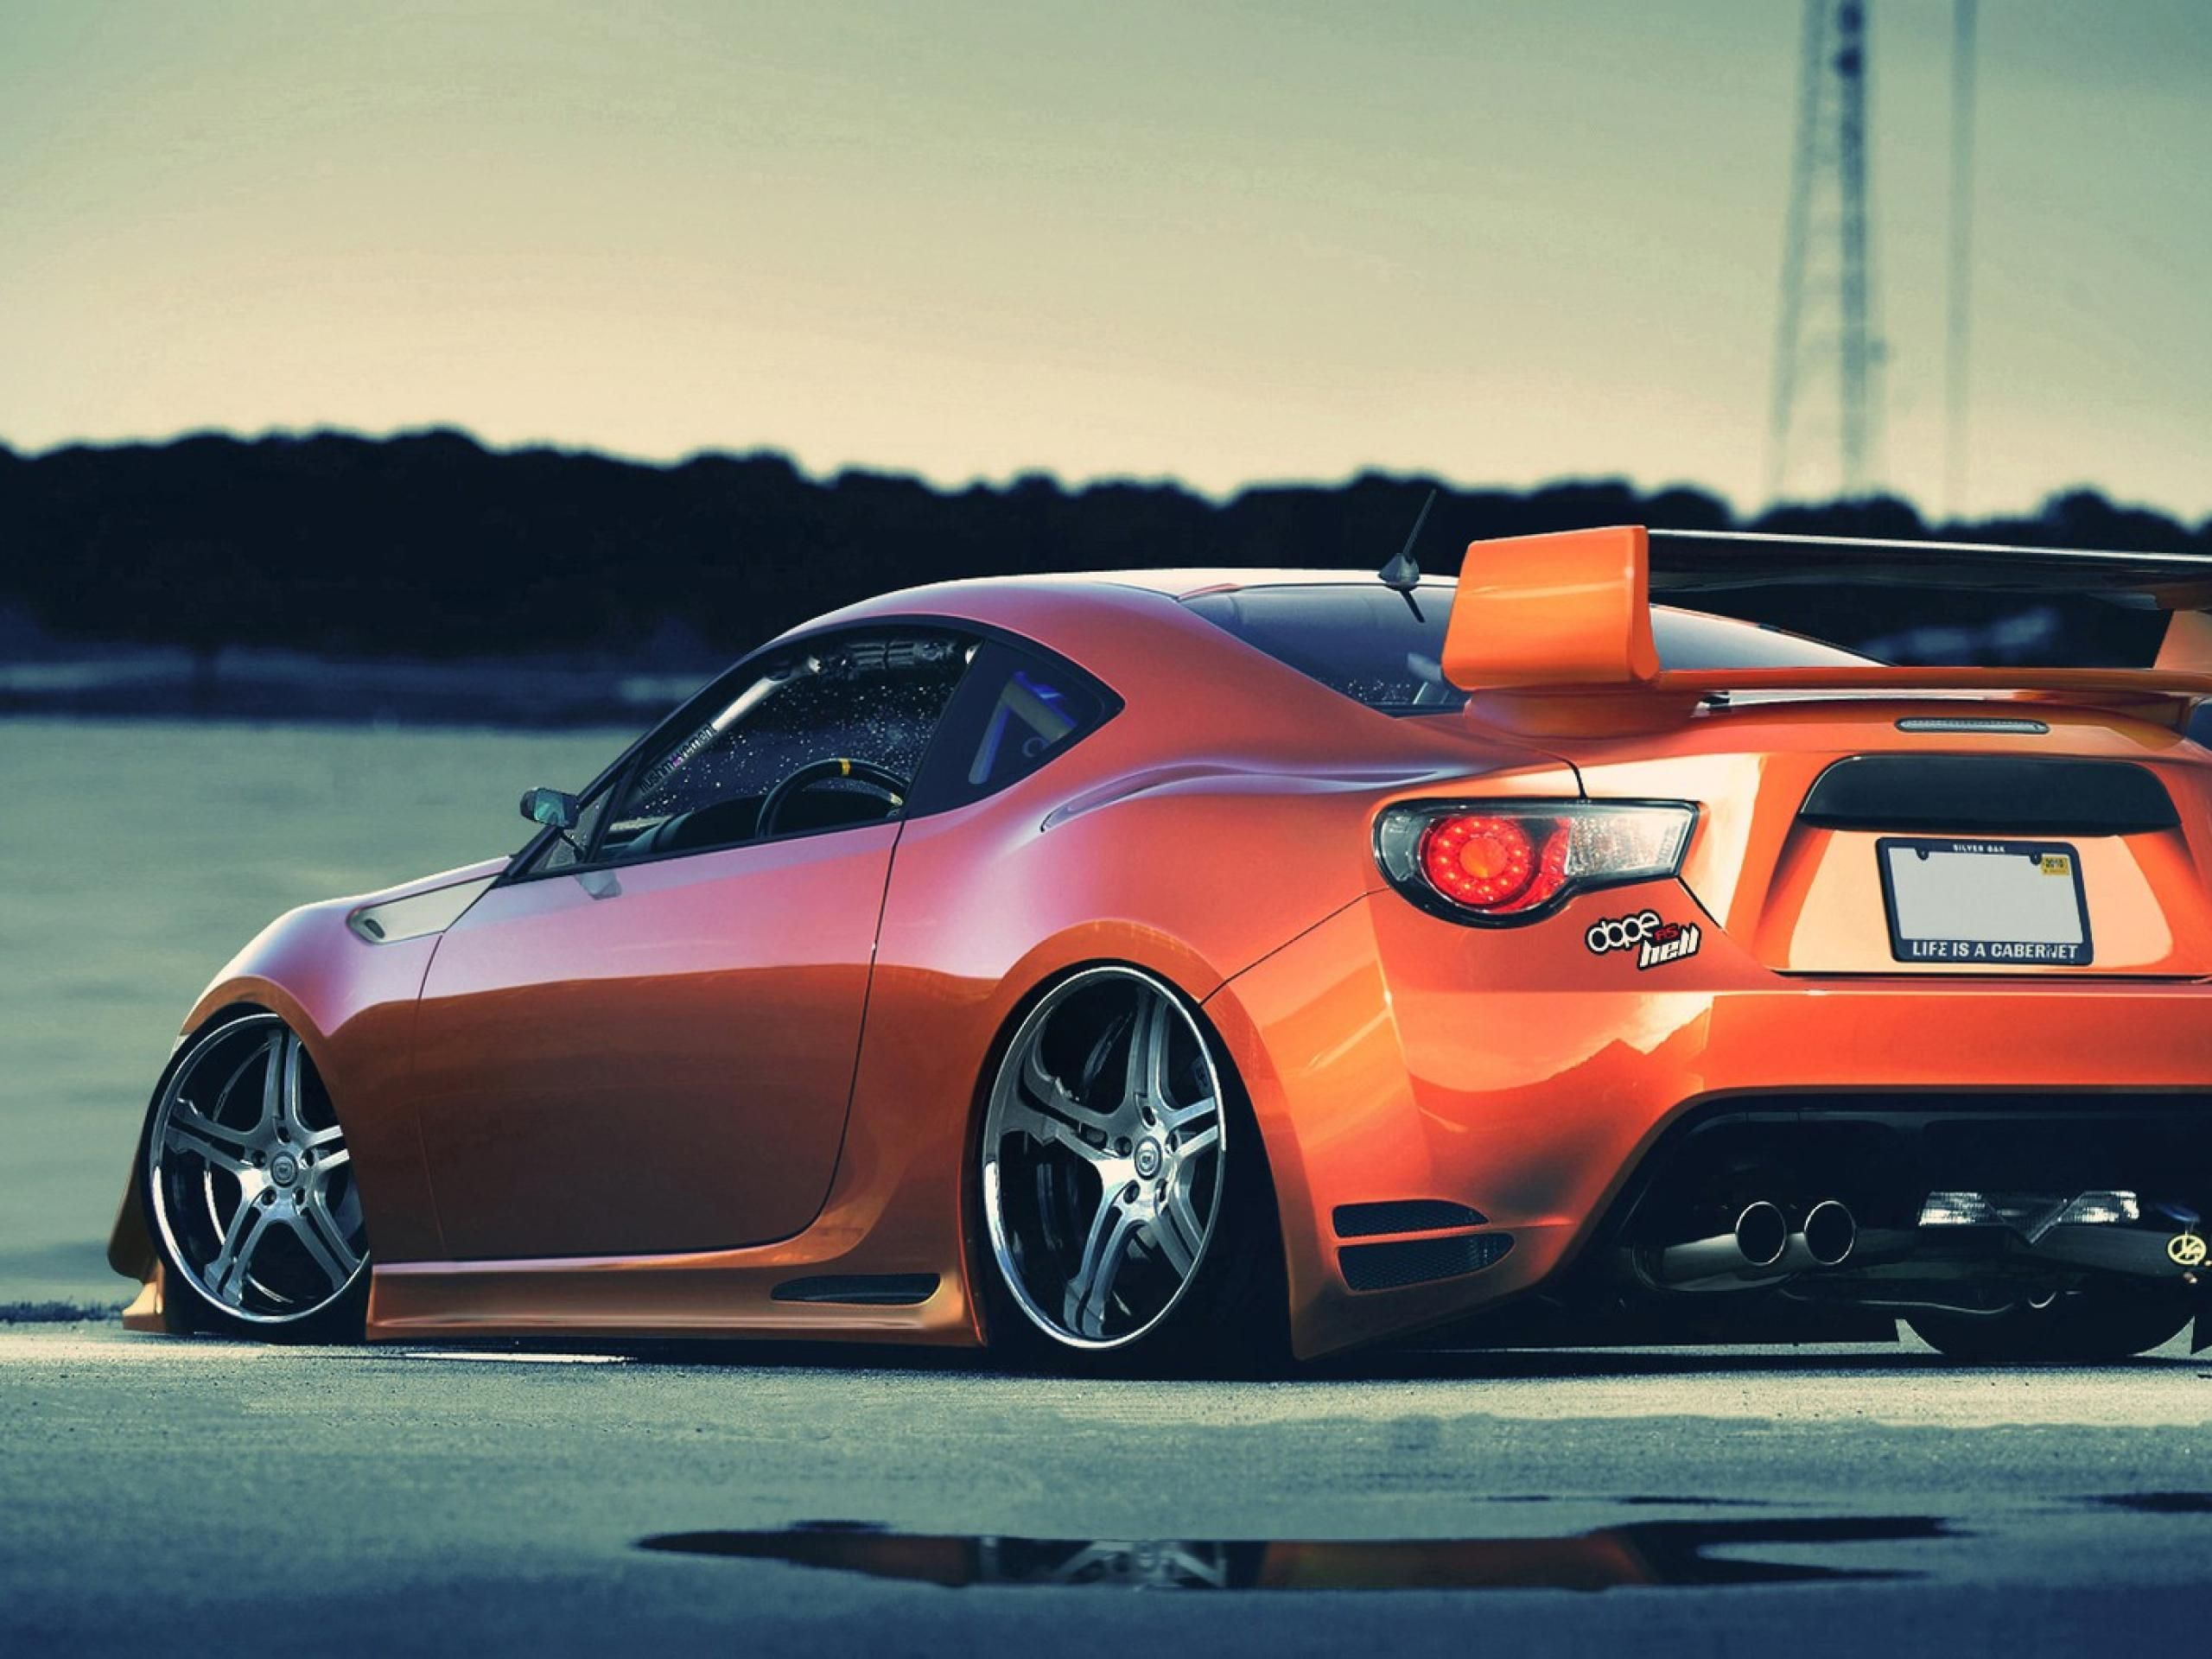 Toyota Gt86 Tuner Cars Toyota Gt86 Car Wallpapers